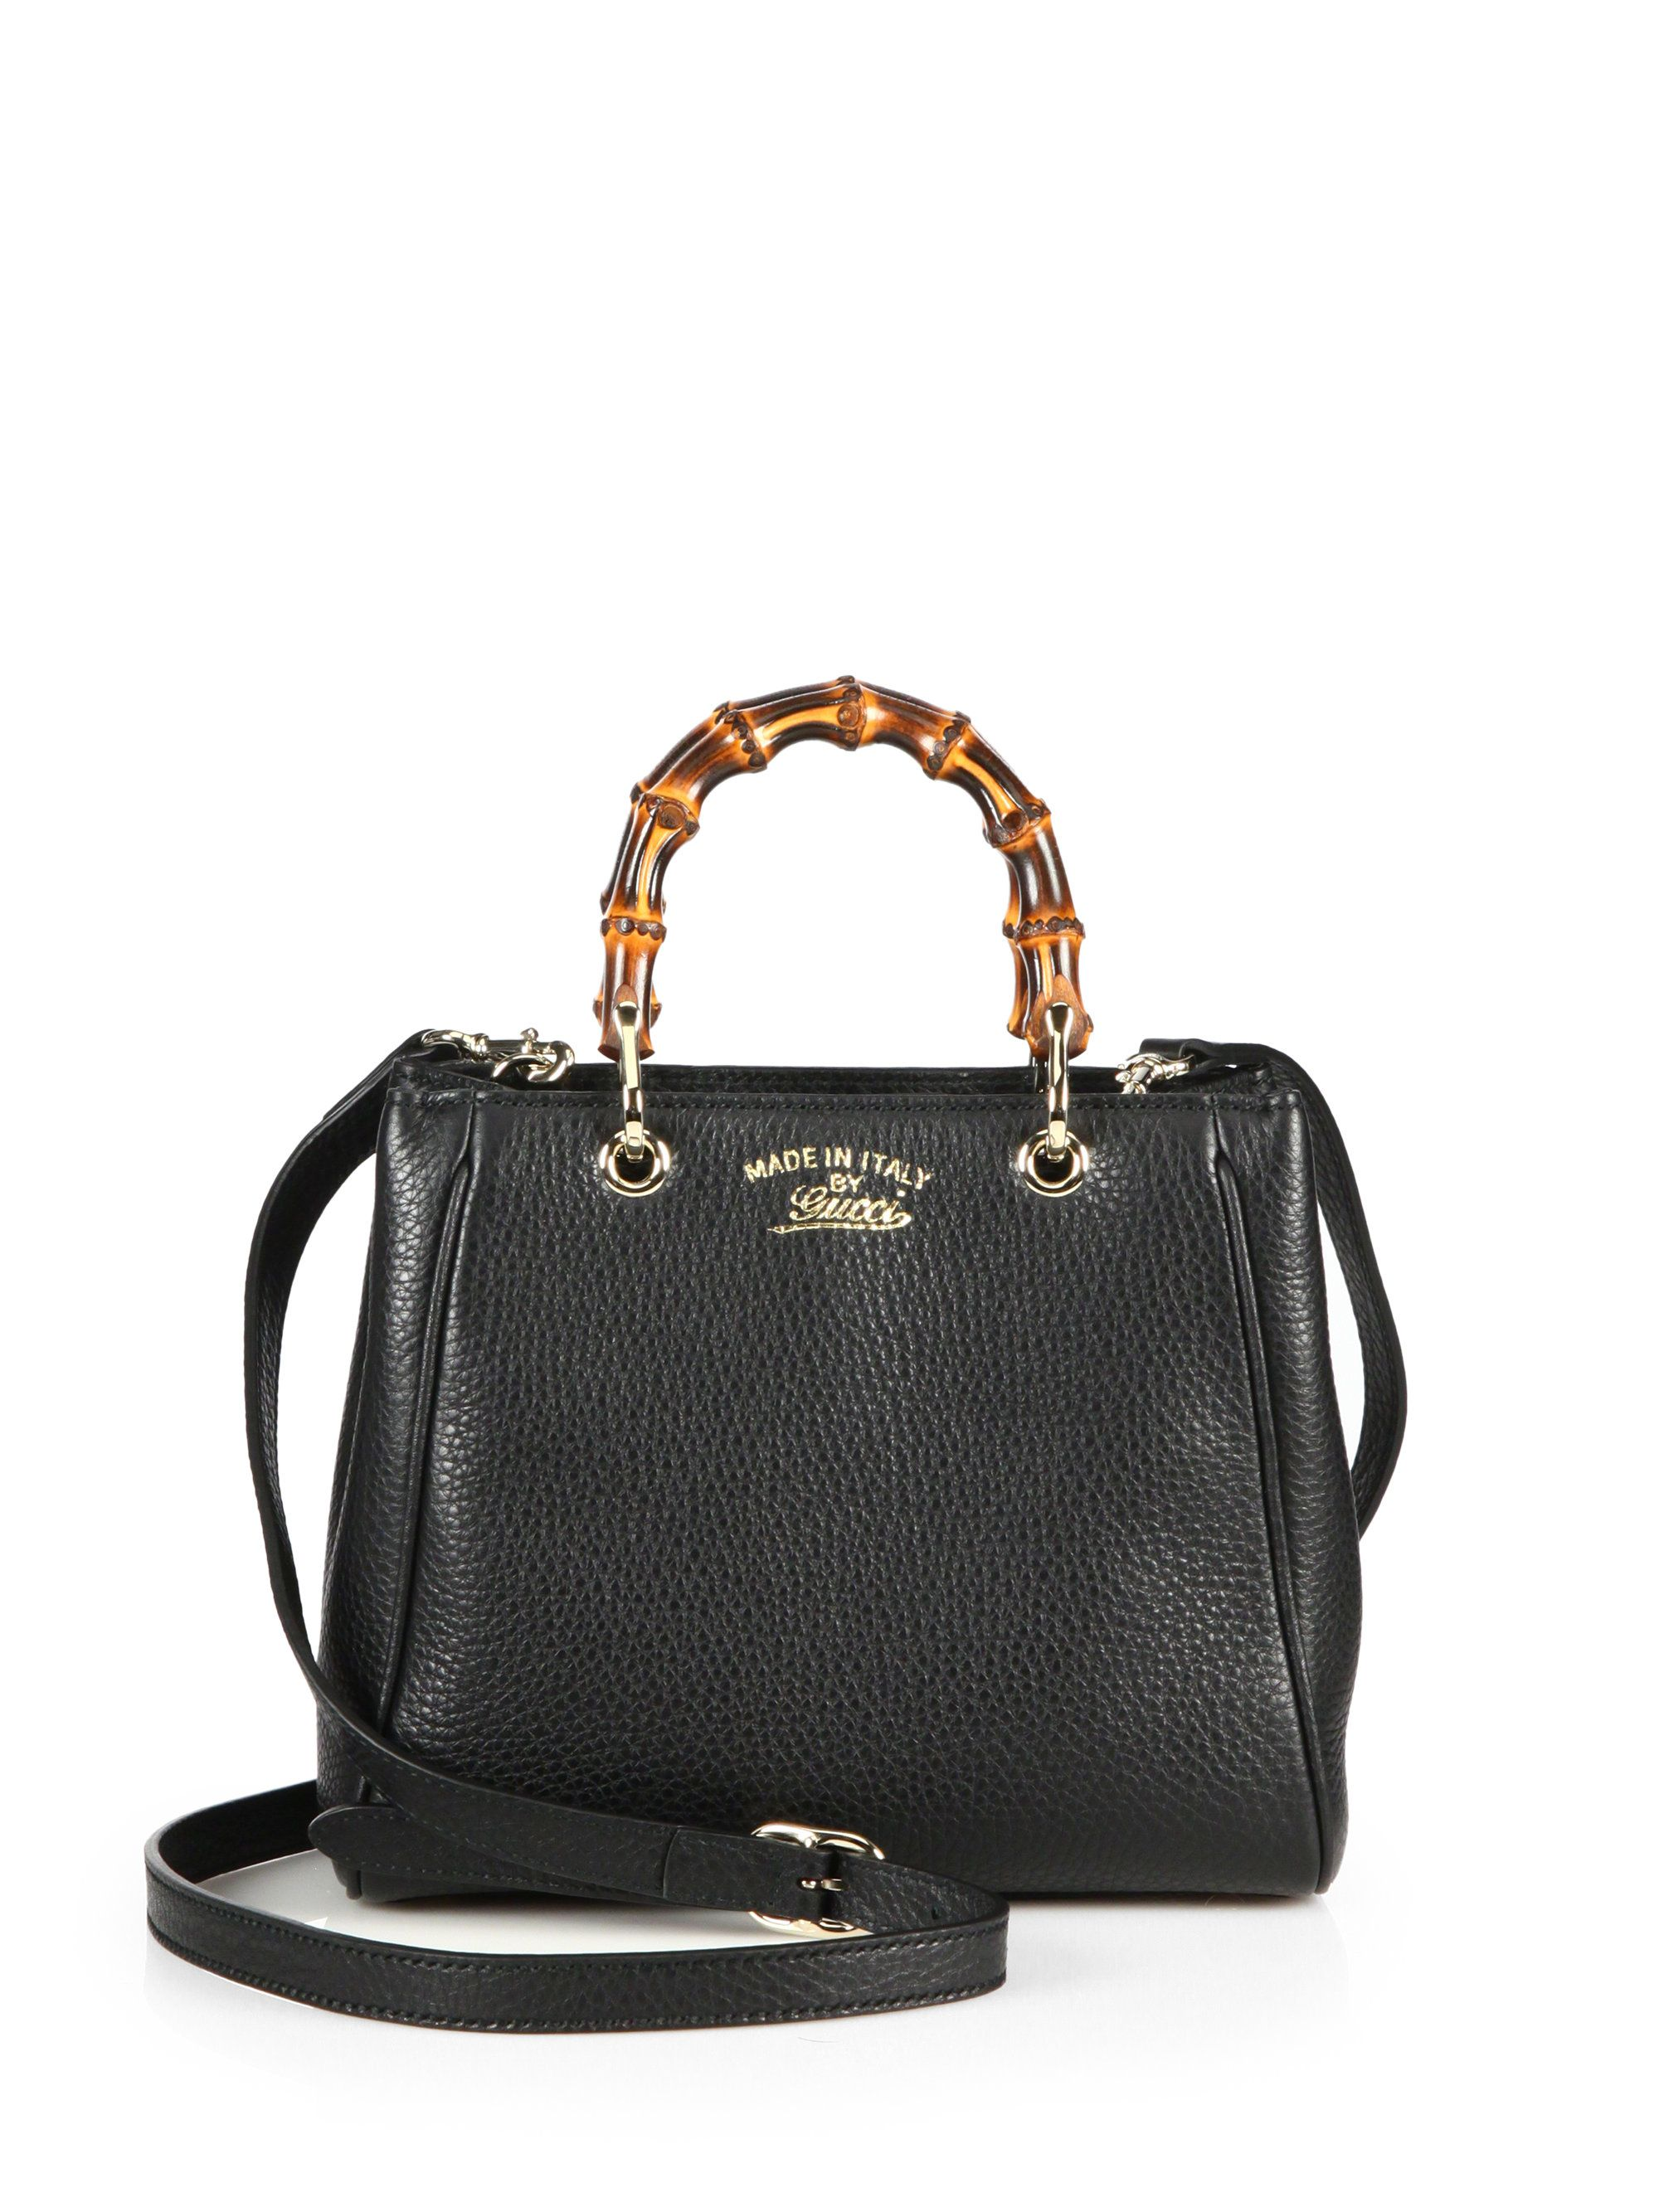 195724584ea1 Gucci Bamboo Shopper Mini Leather Top Handle Bag in Black (NERO-BLACK)